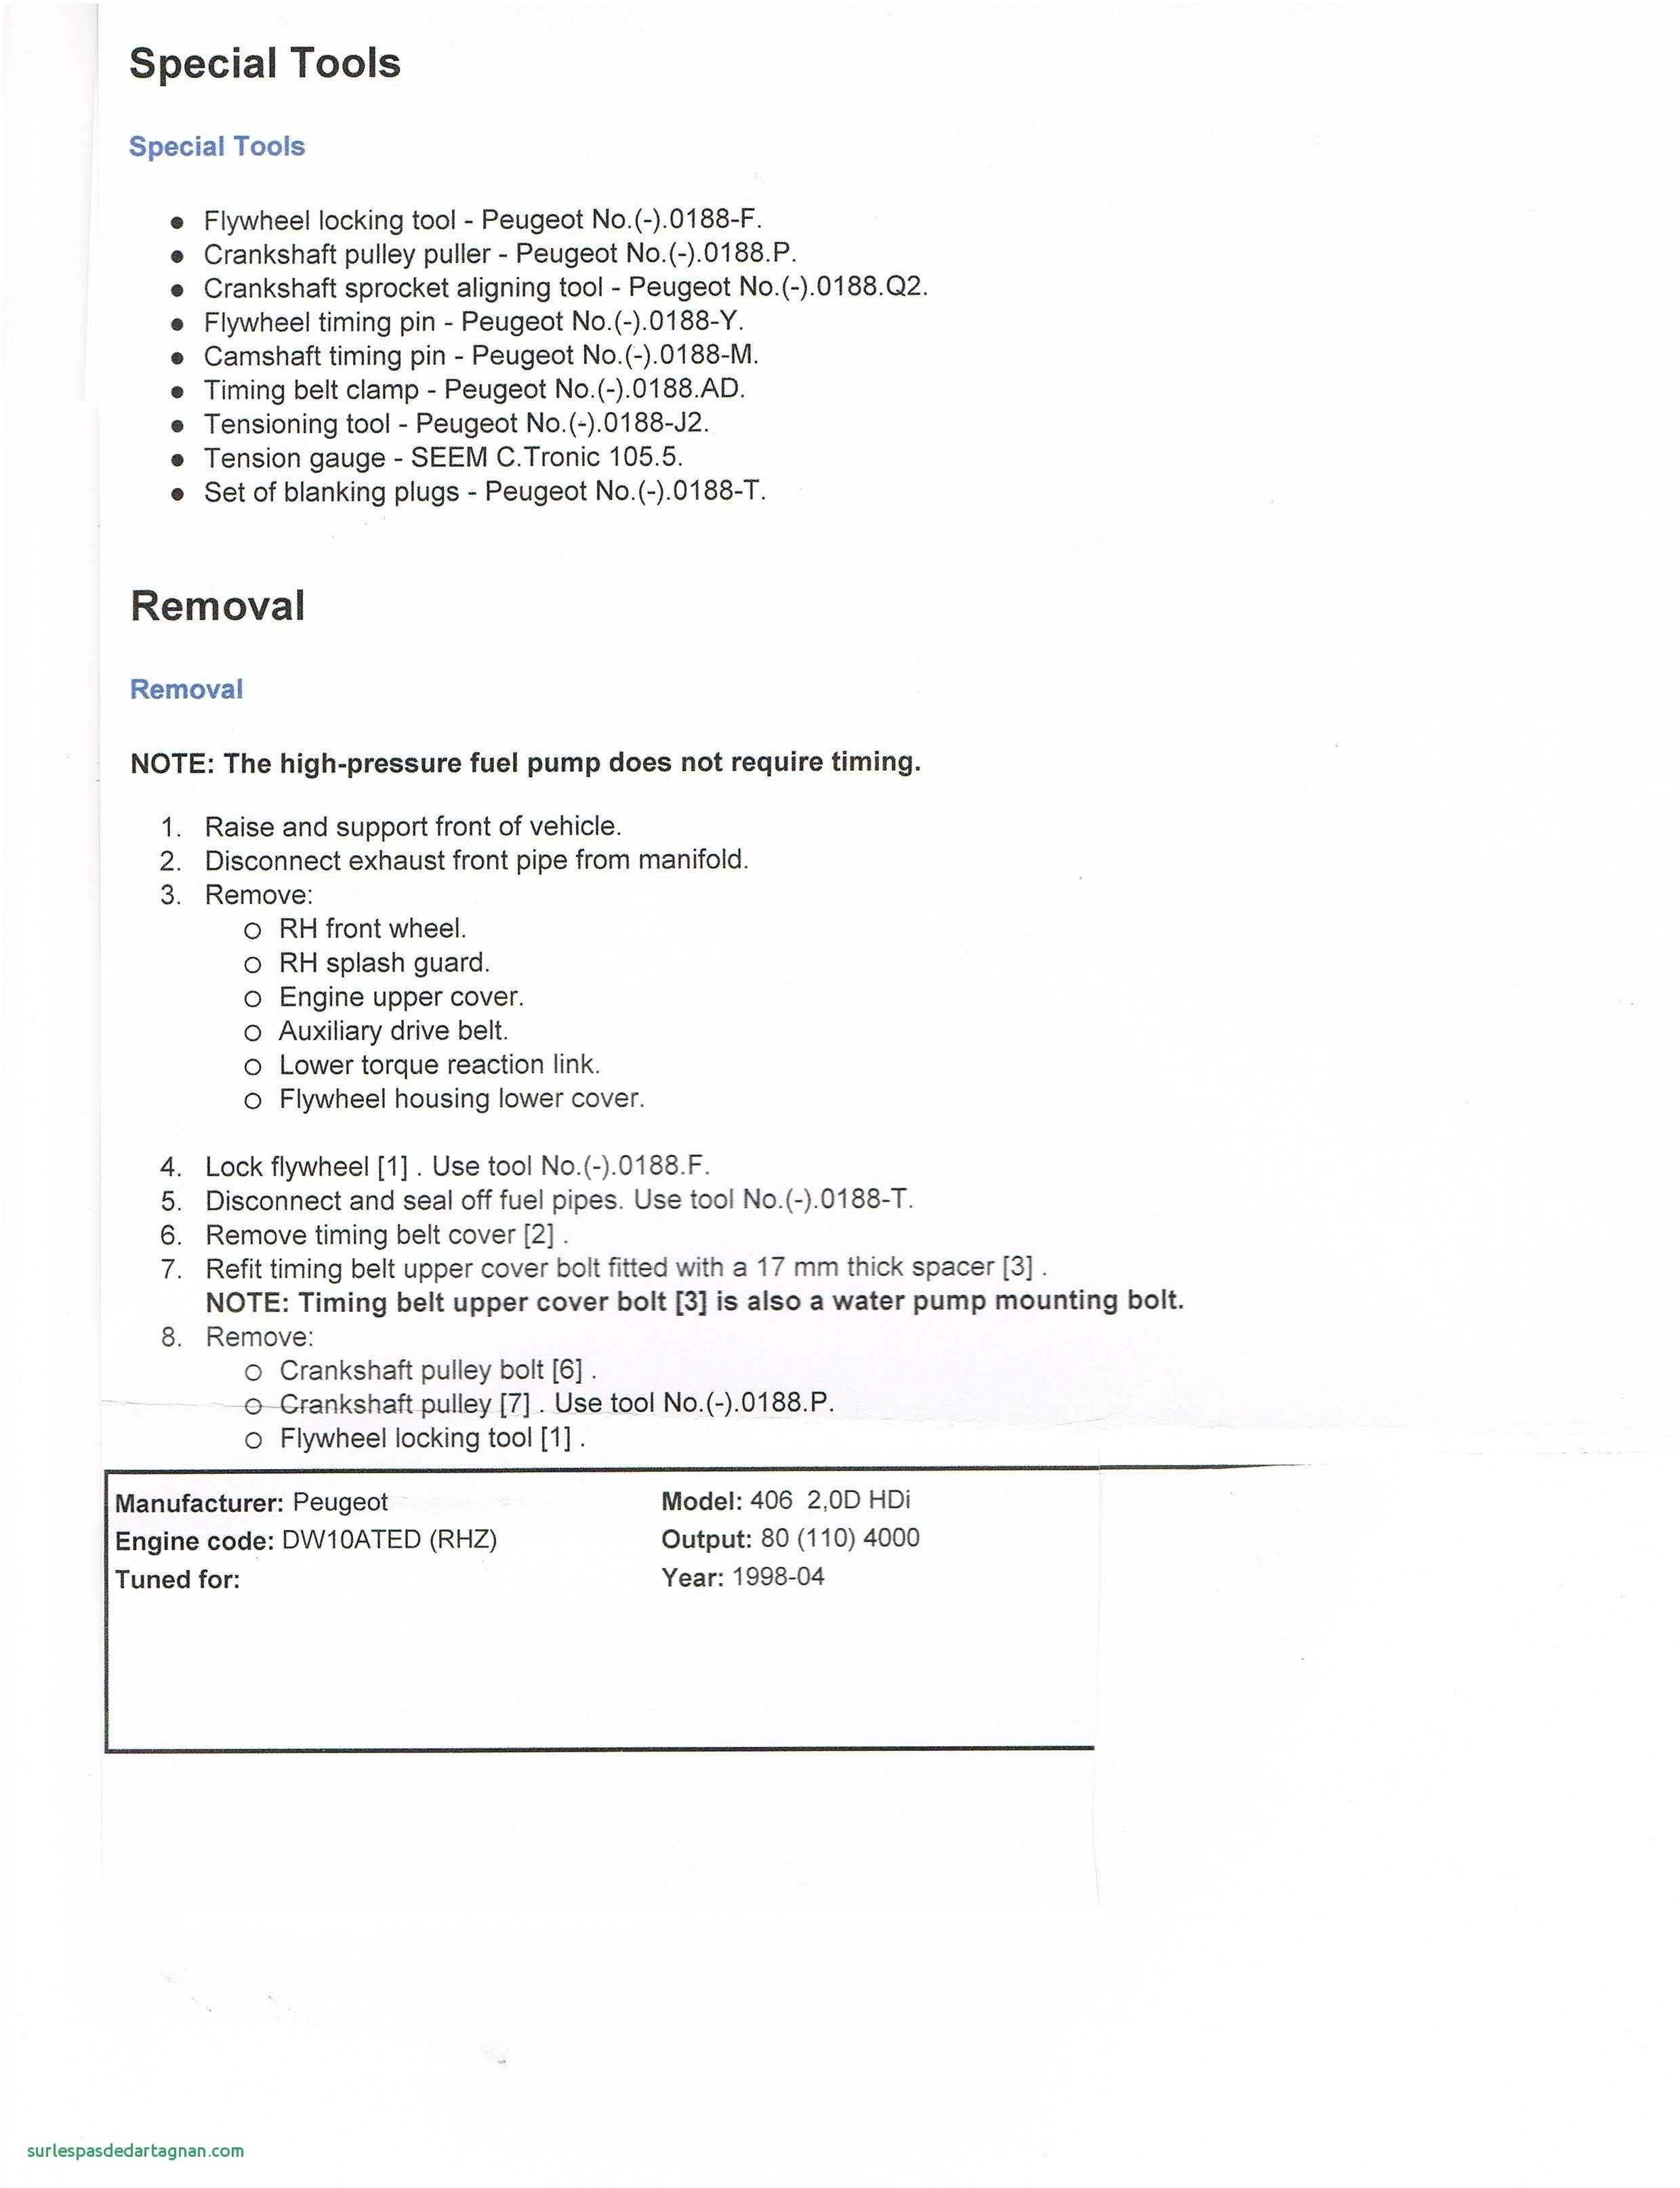 Starting A Magazine Business Plan 012 Easy Business Plan Template astounding Templates Continuity to